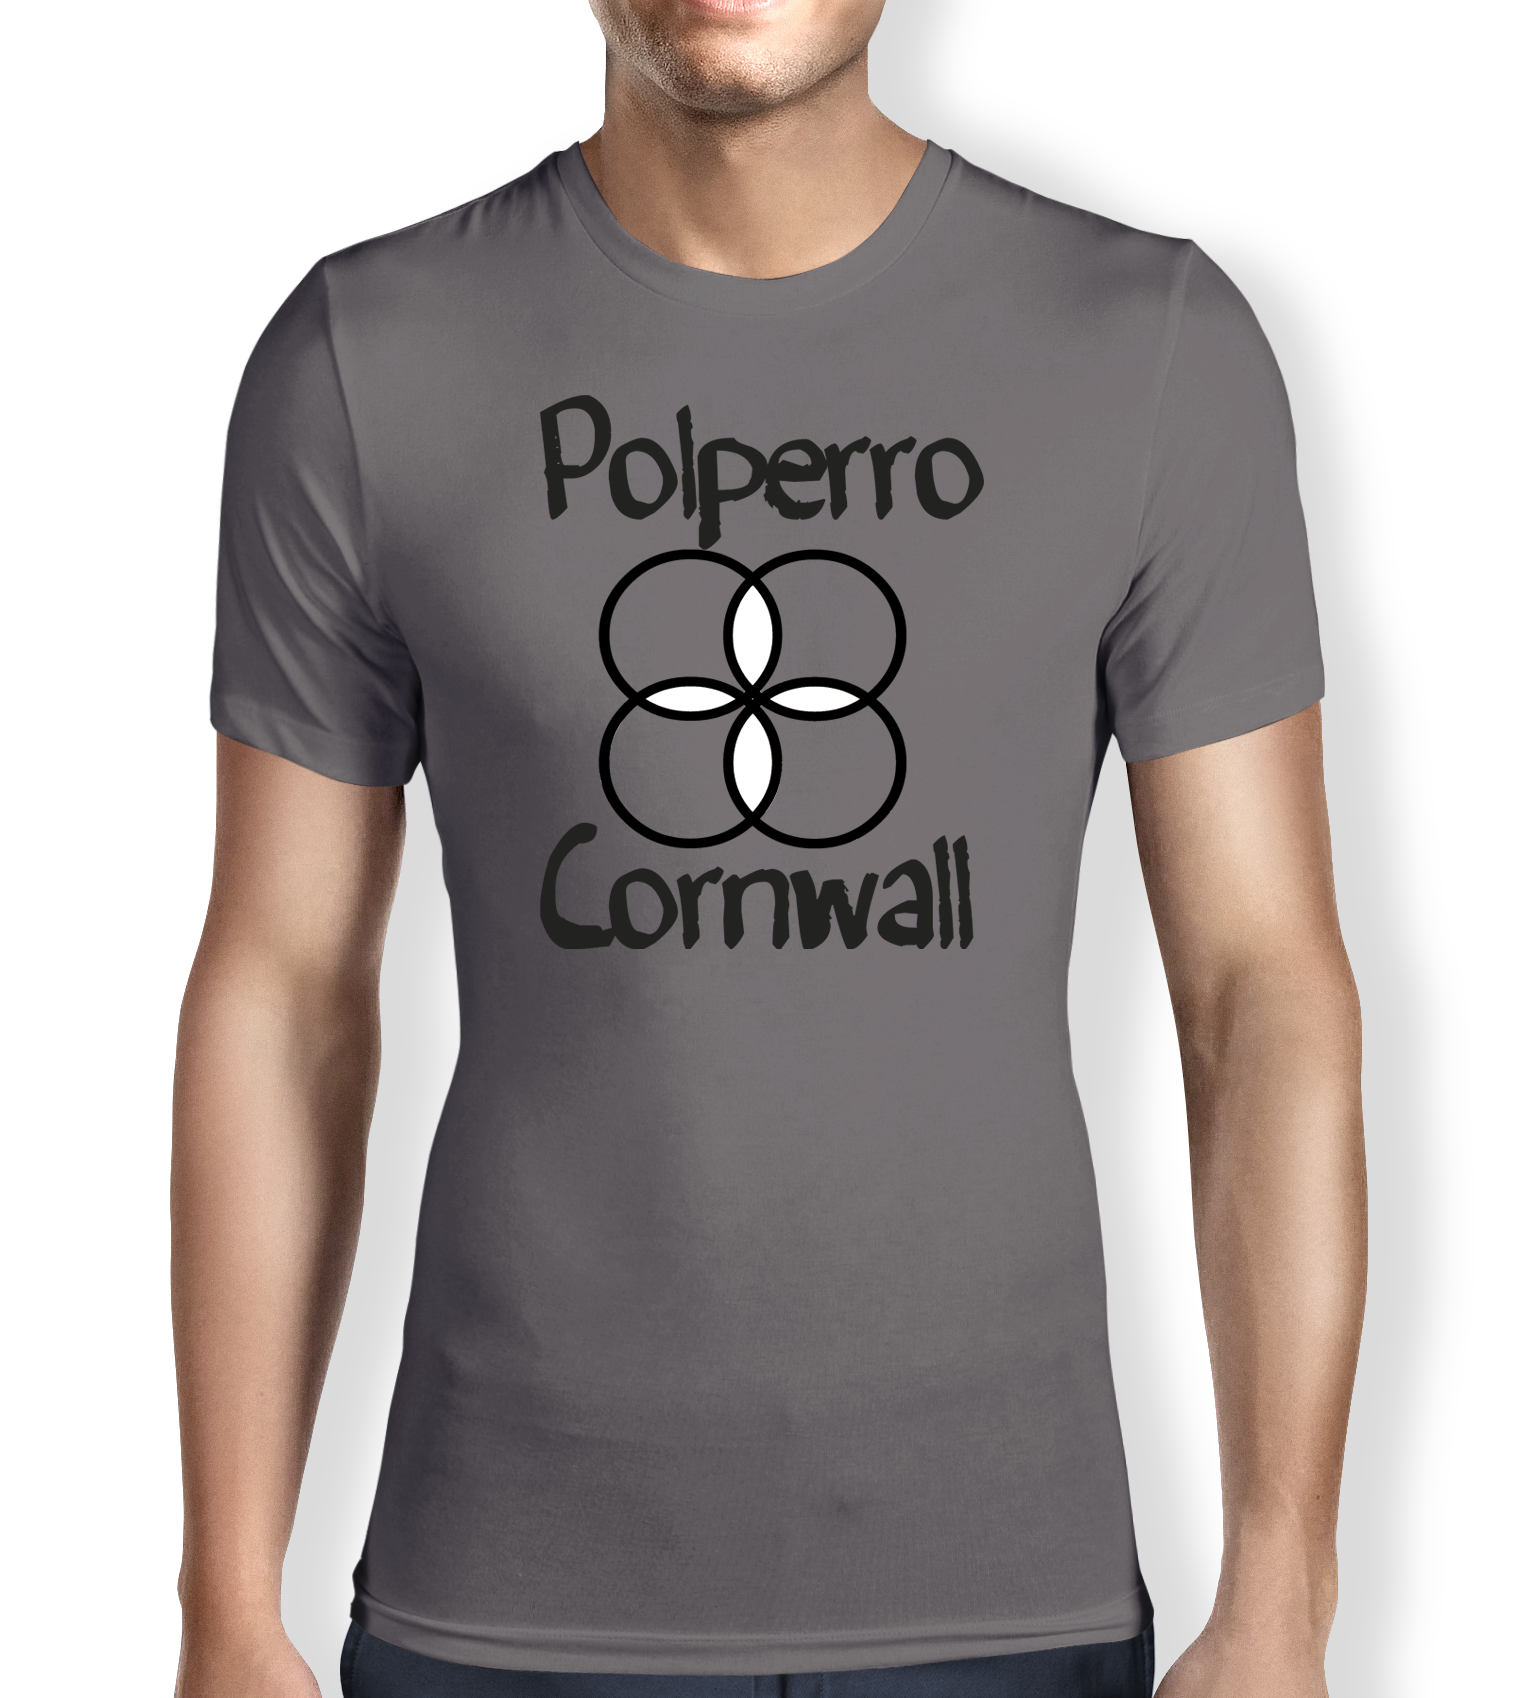 polperro-cornwall-grey-mens t-shirt